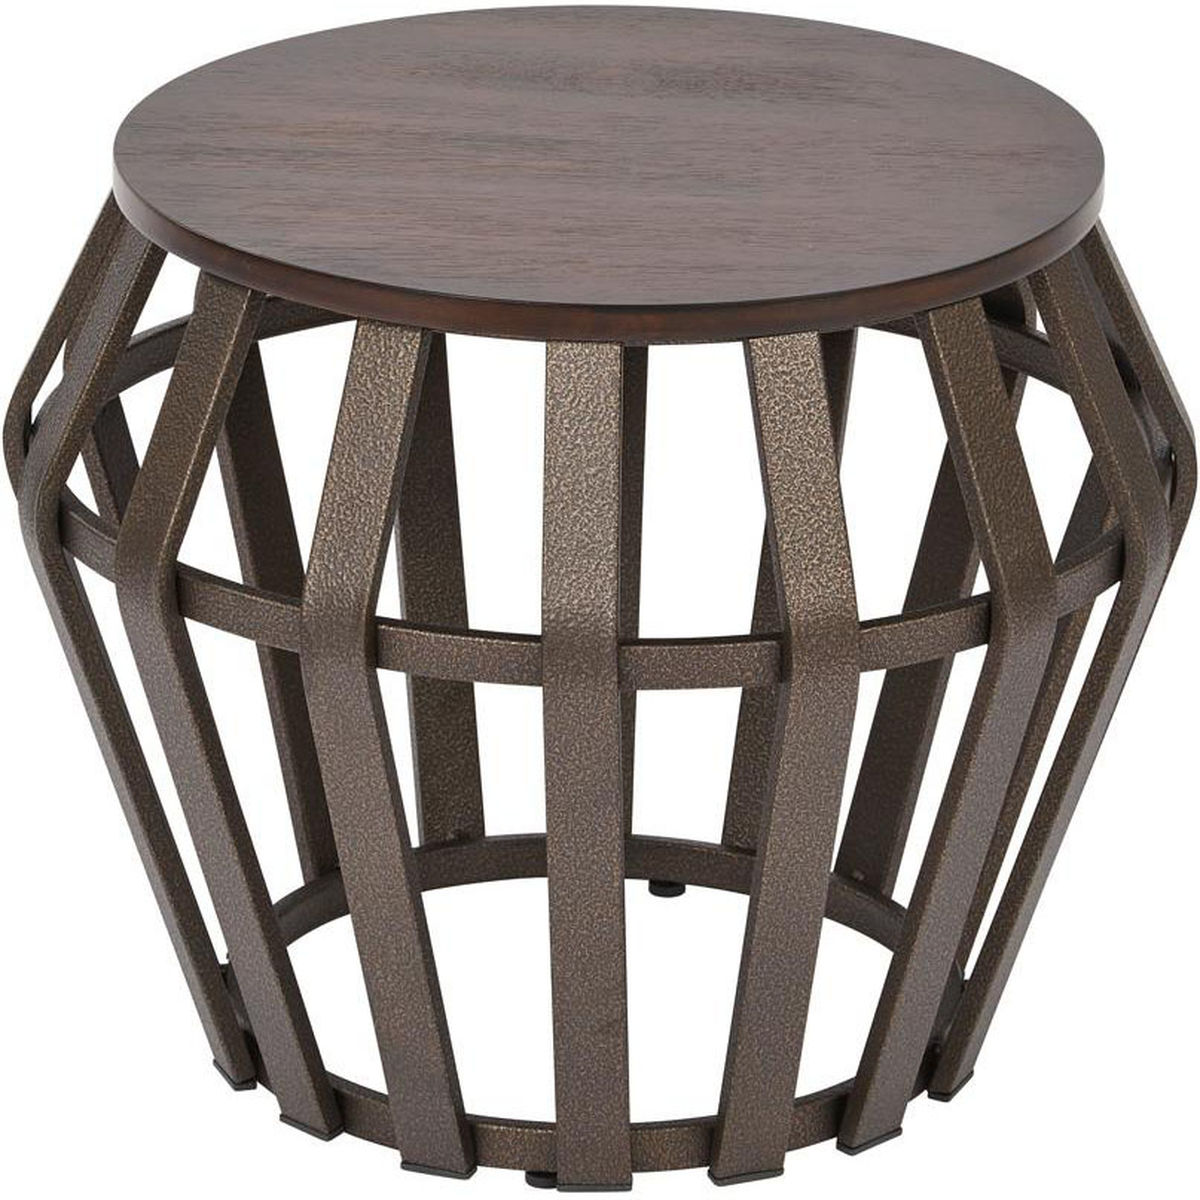 piece solana espresso table set bizchair office star products round accent our osp designs metal tables counter height chairs wicker trunk small bathroom floor cabinet pedestal